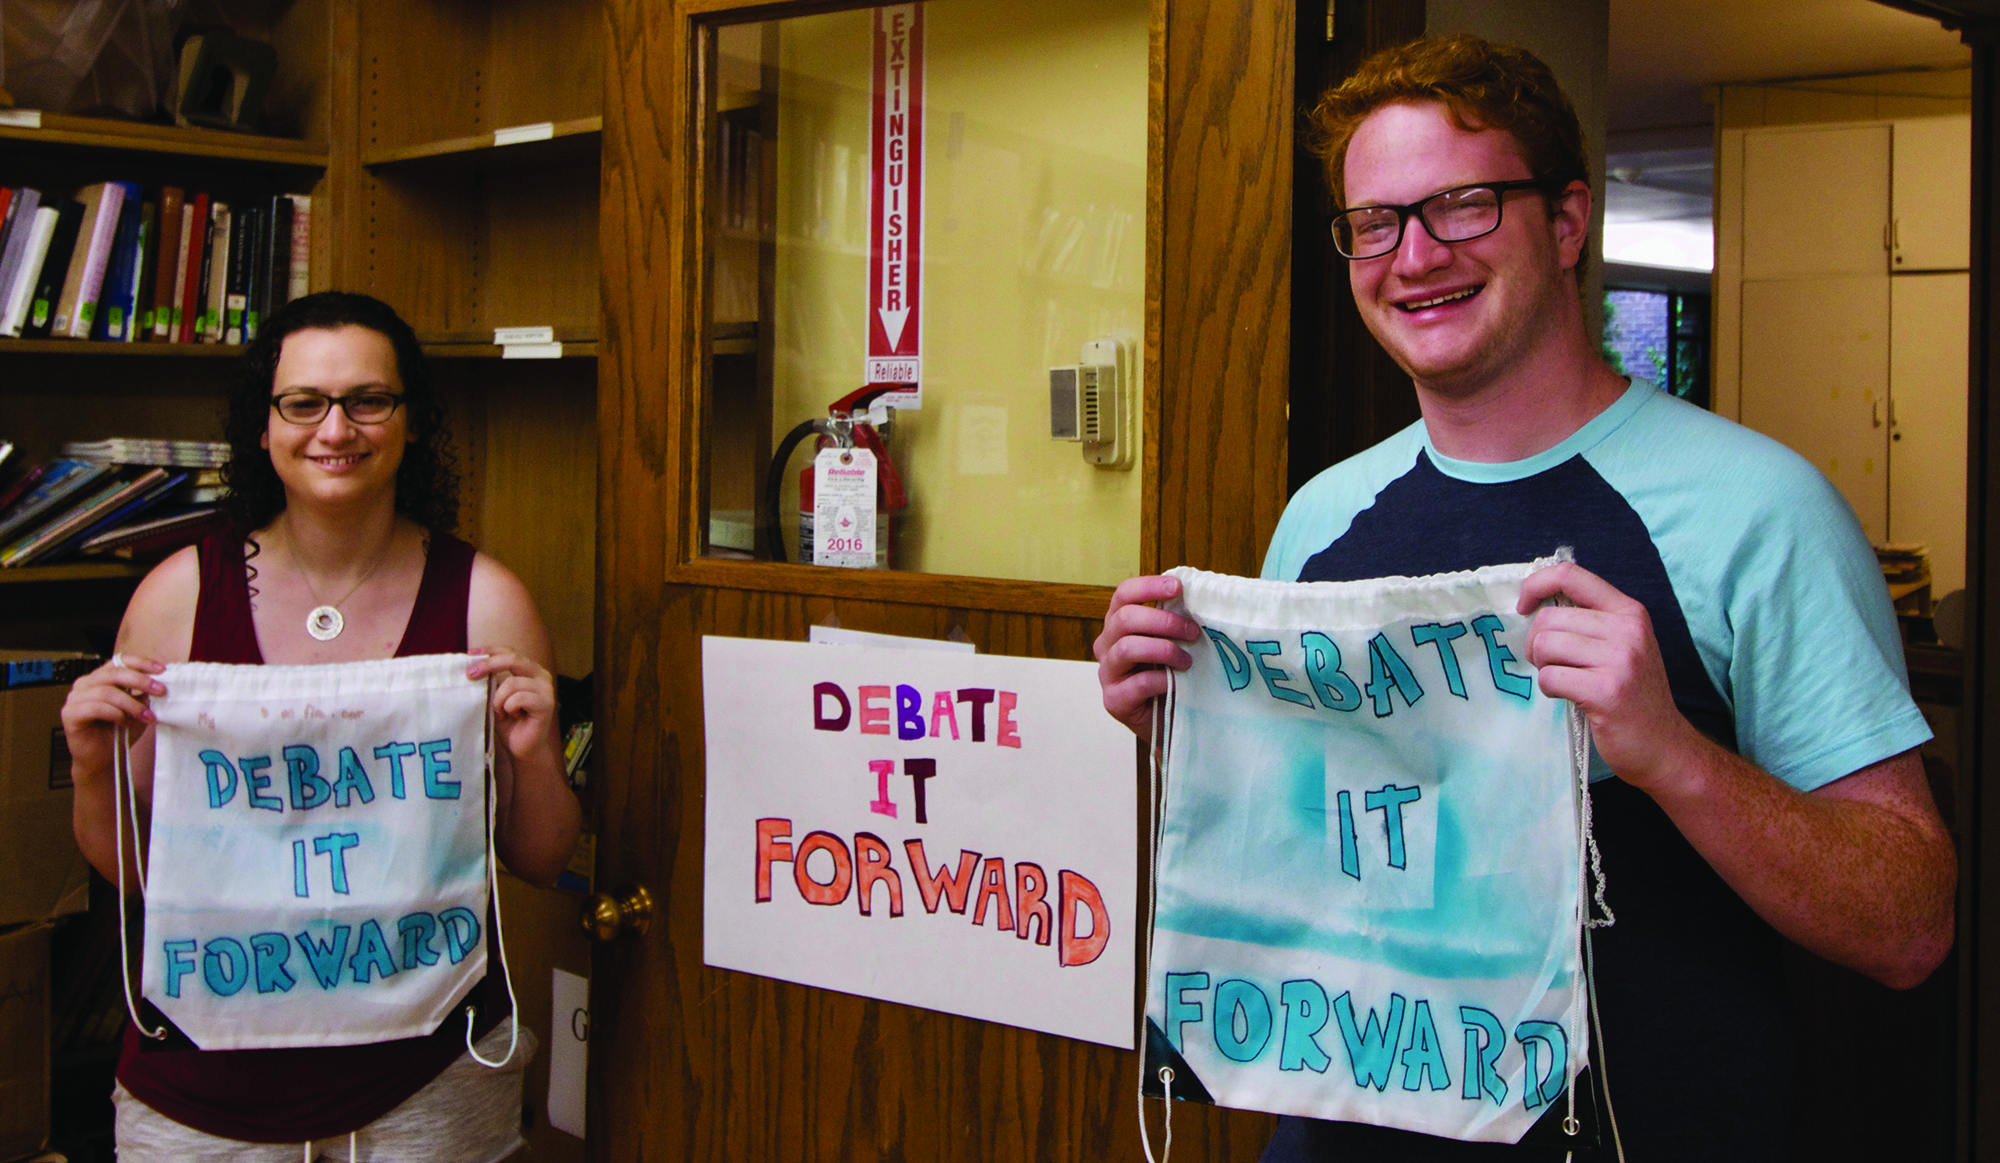 Leah Shapiro and Josh Aaronson of Debate it Forward